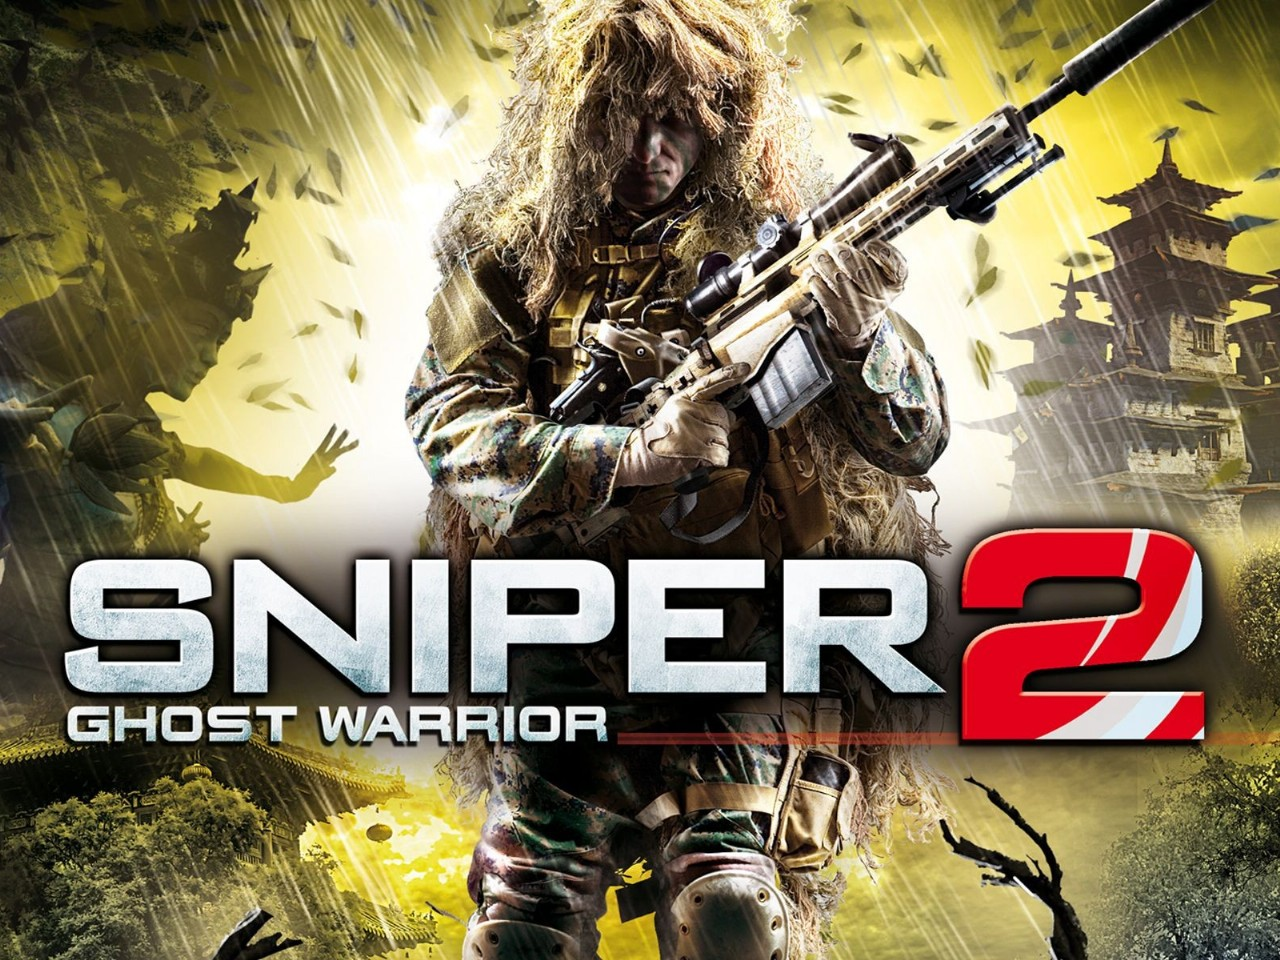 Sniper: Ghost Warrior 2 Crack